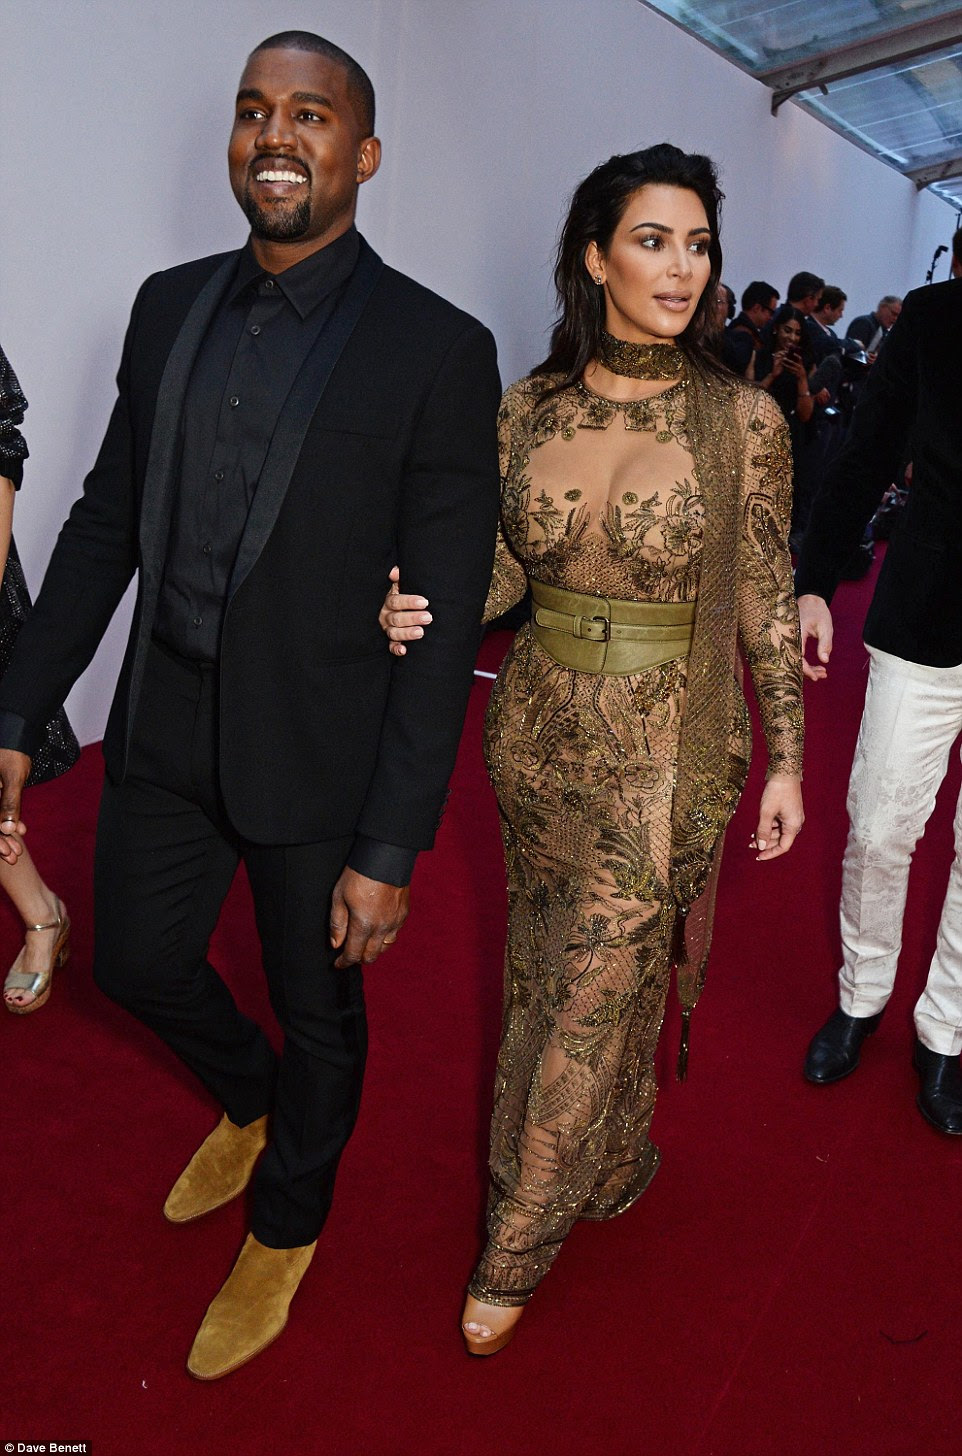 Taking it Yeezy: Even Kanye cracked a smile at the excitement of the uber-stylish affair